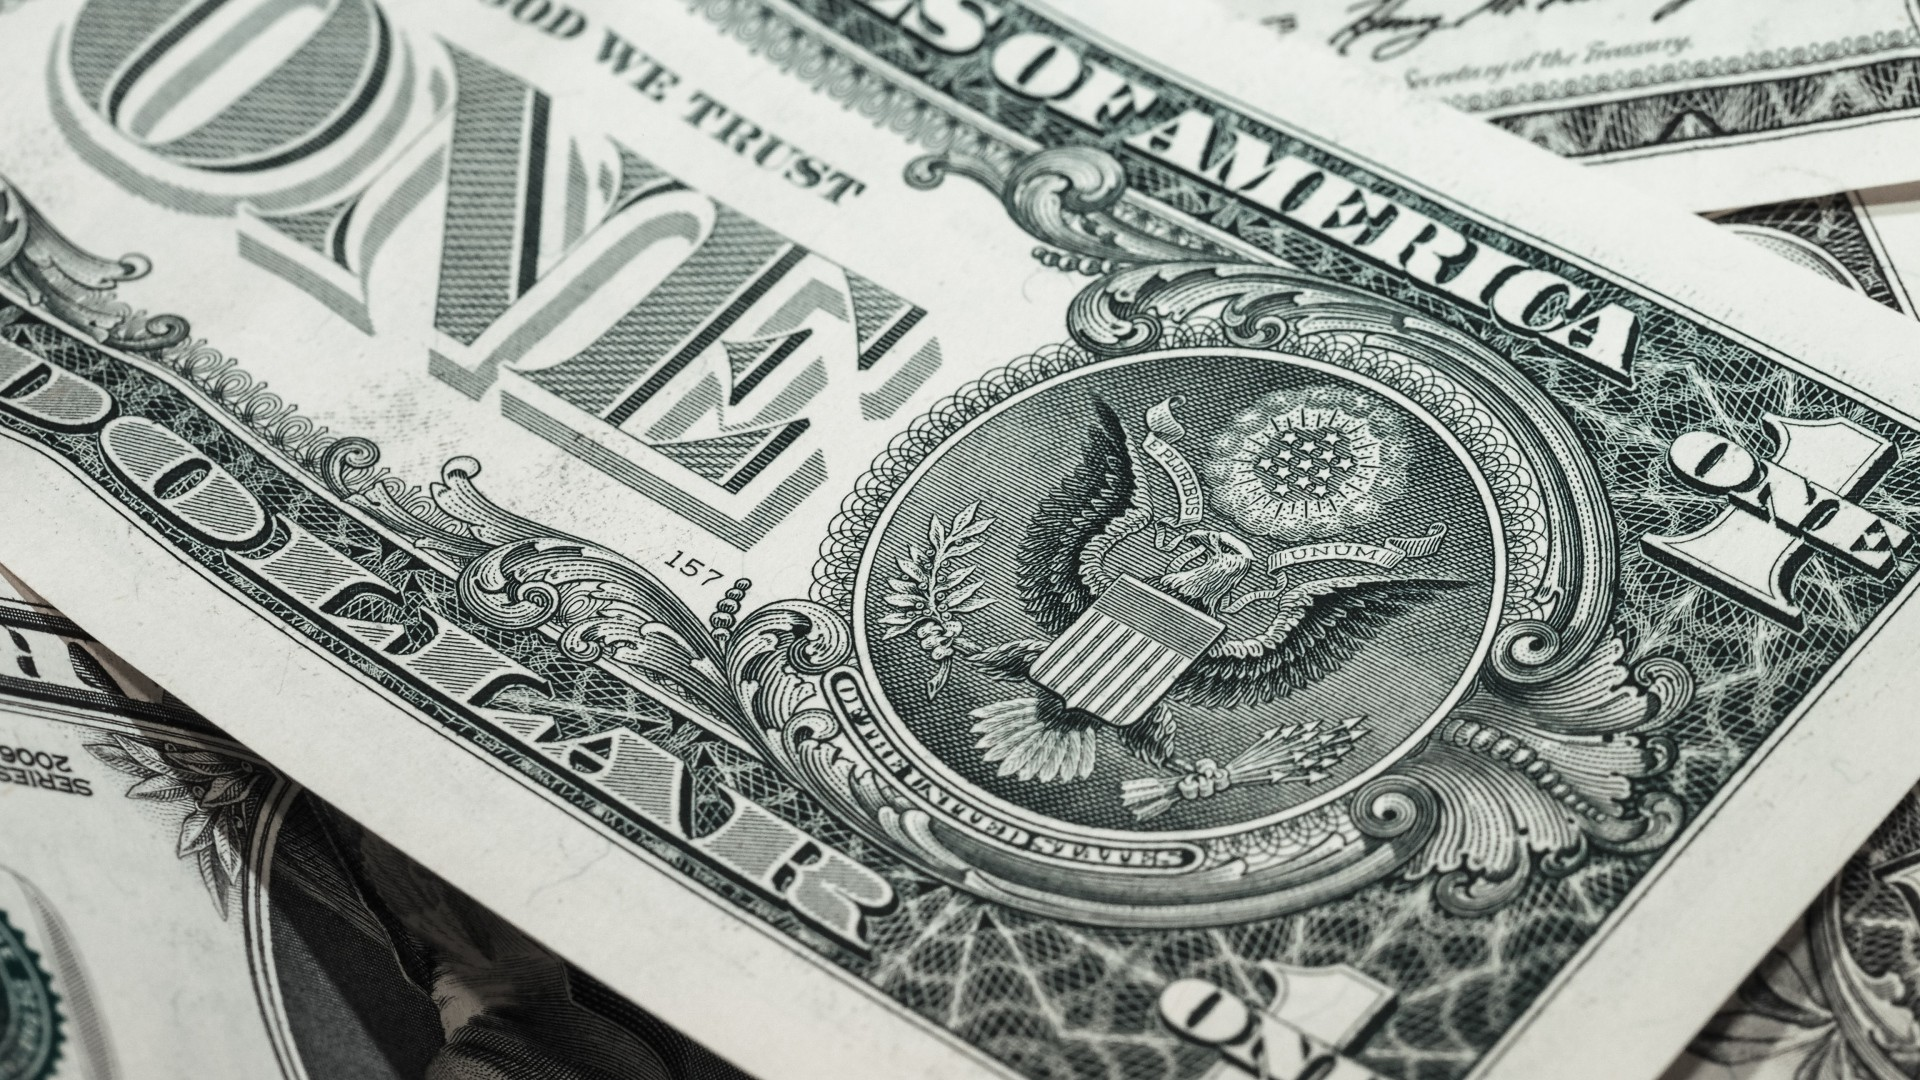 1920x1080  Wallpaper dollar, bill, banknote